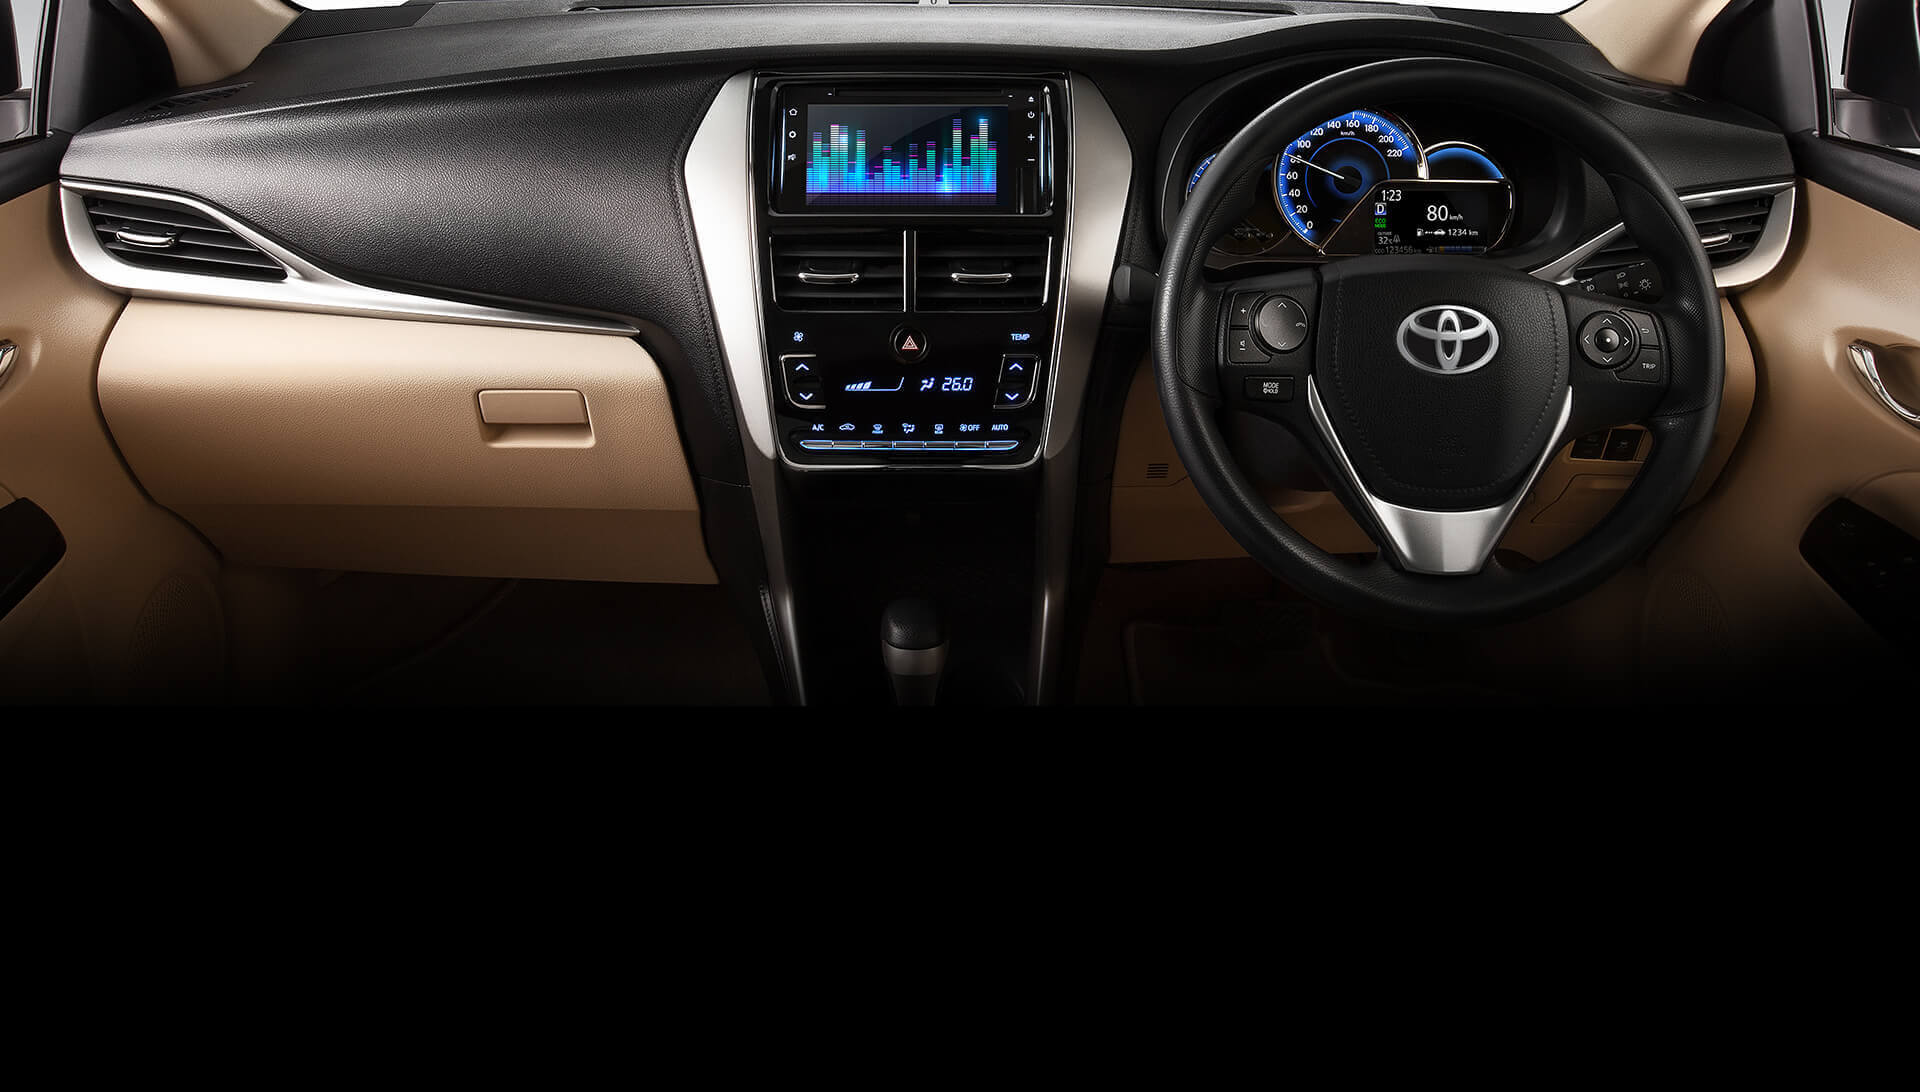 Toyota Yaris,reviewed by eZhire